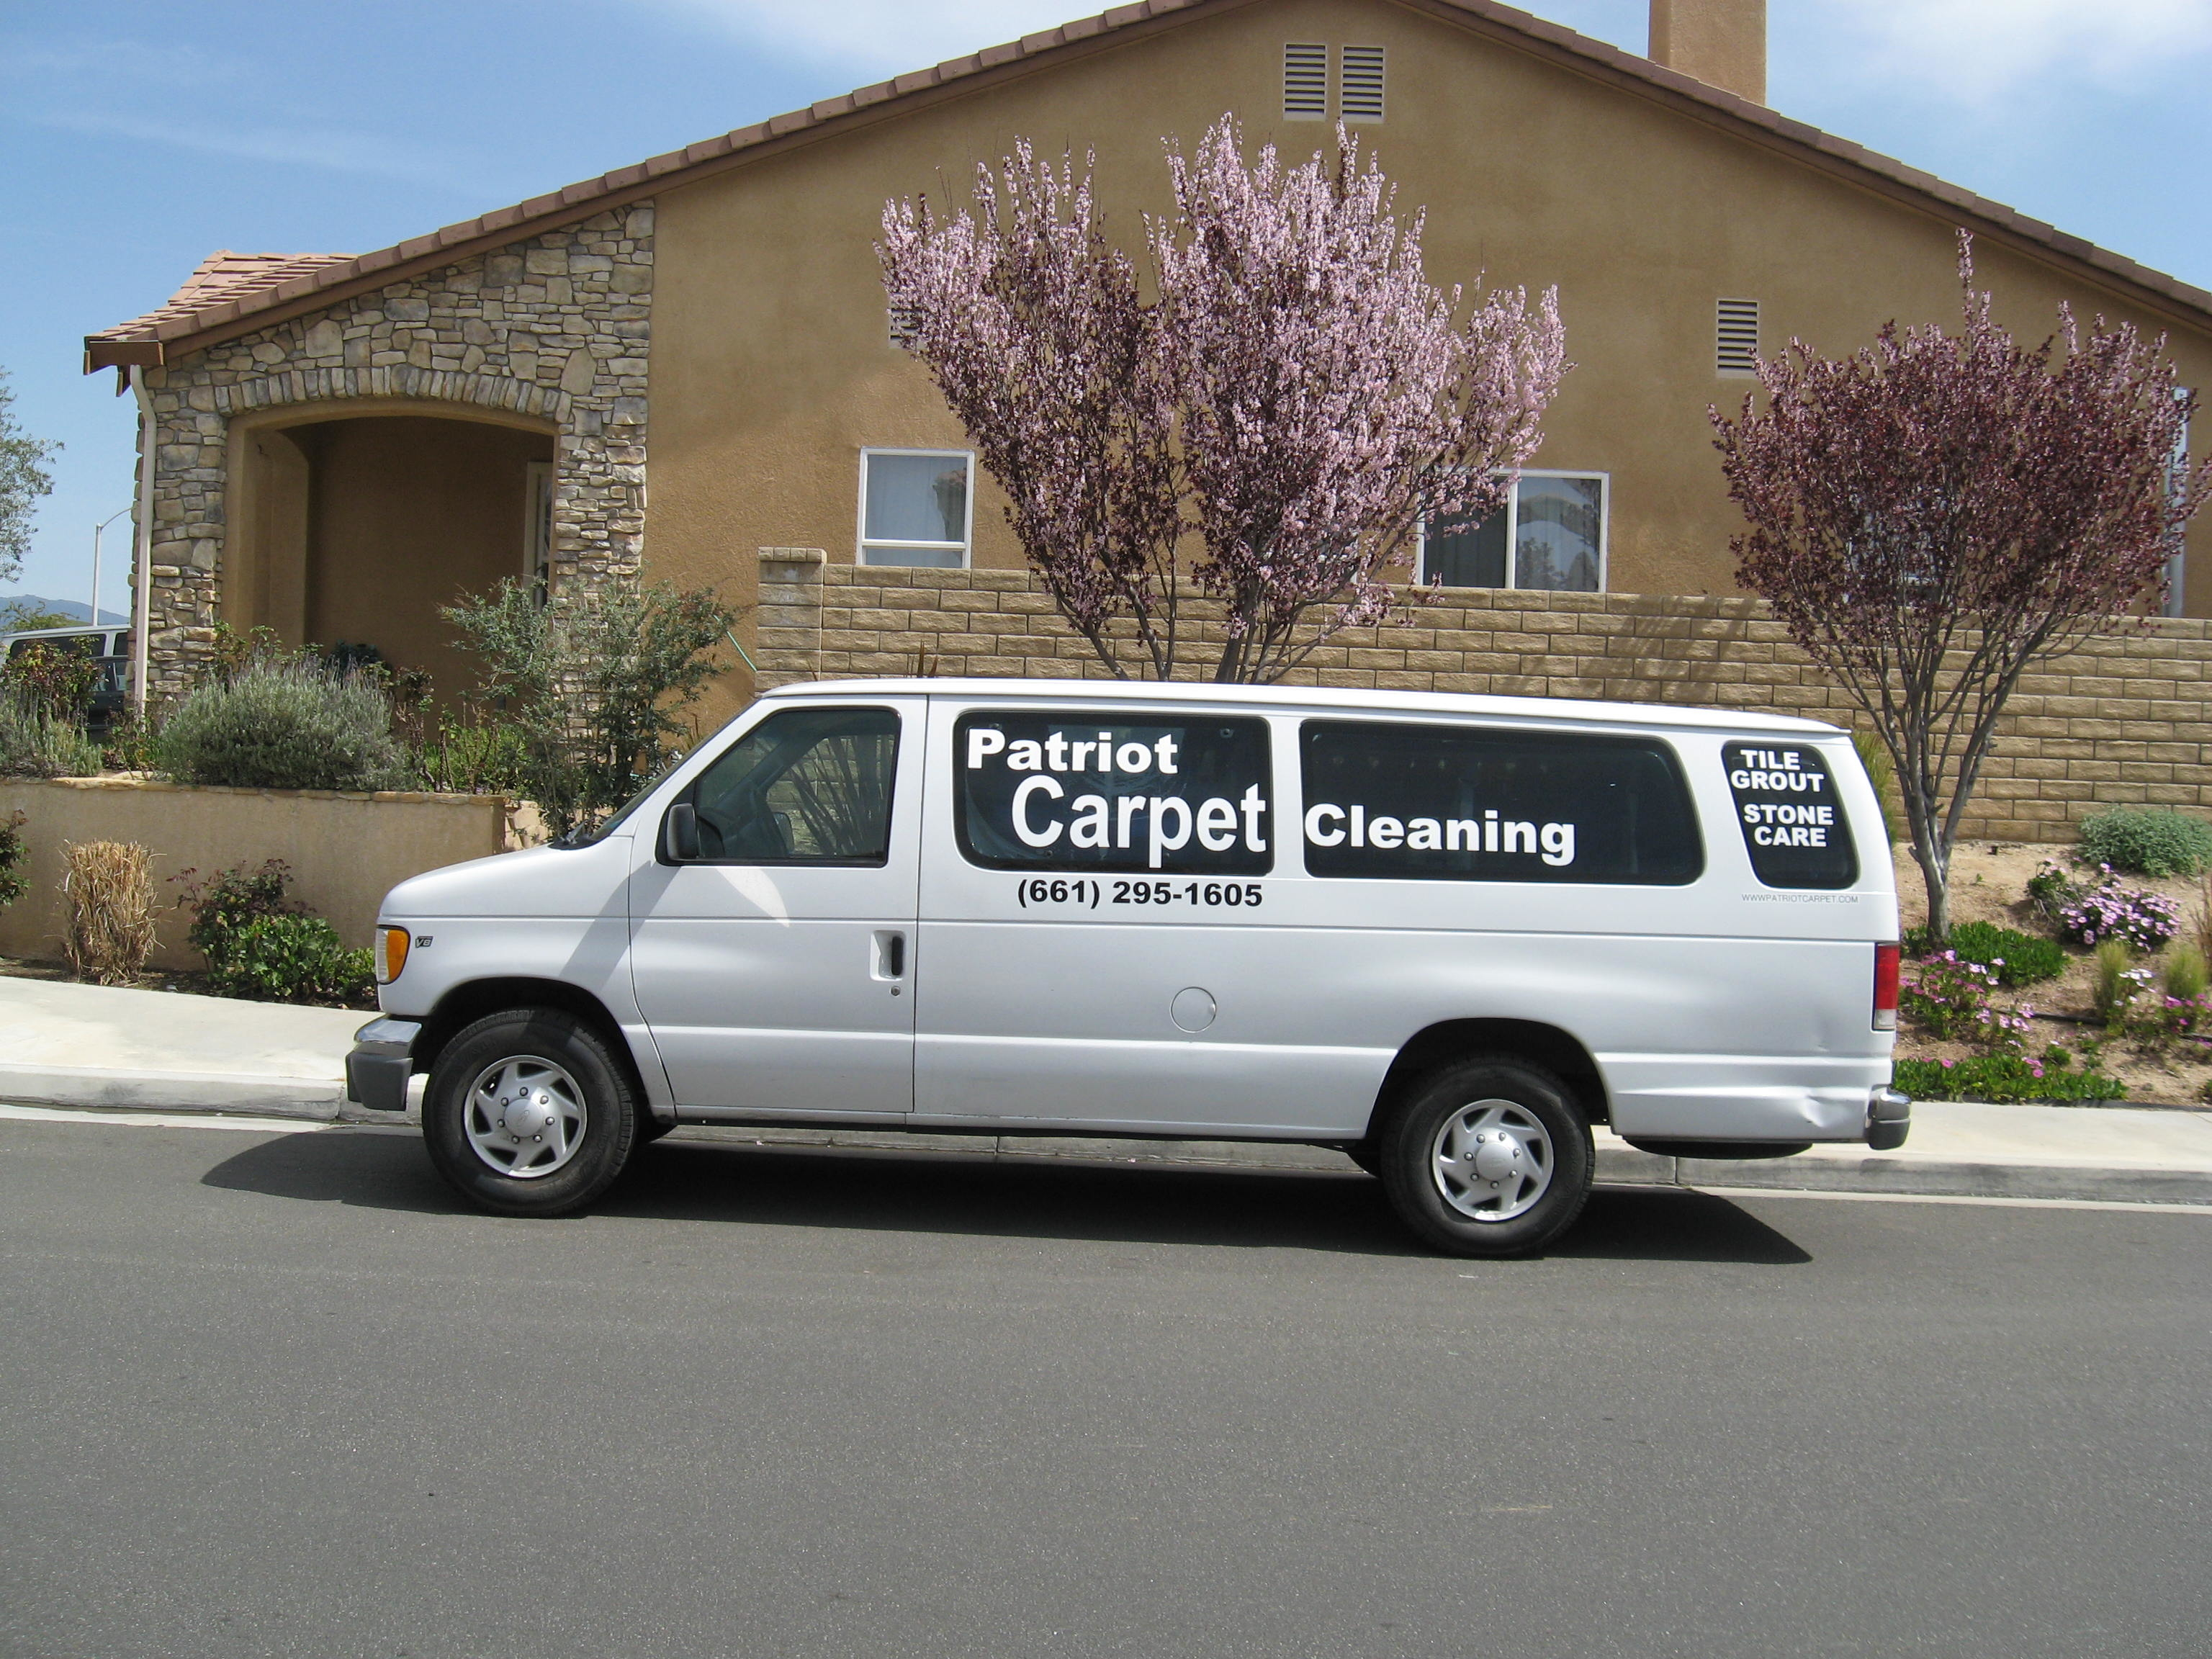 Patriot Carpet Cleaning image 2